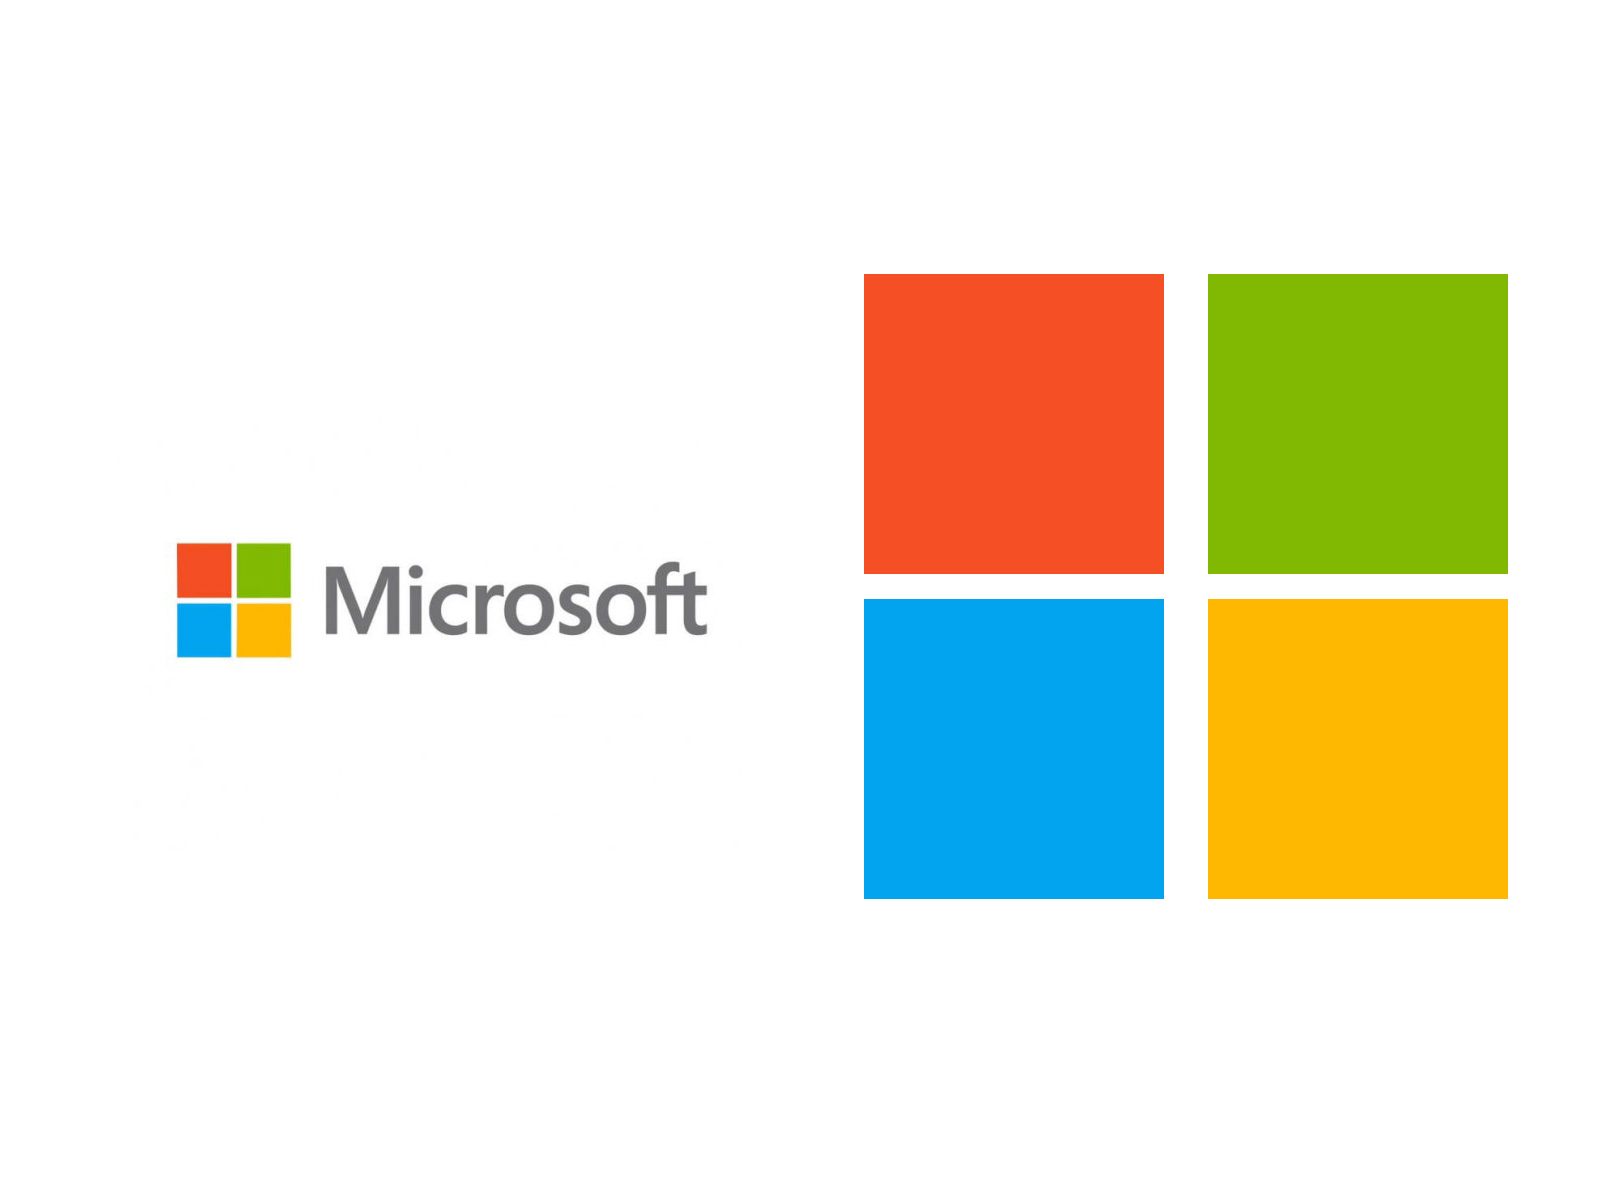 Microsoft Coming to Campus  Announce  University of NebraskaLincoln